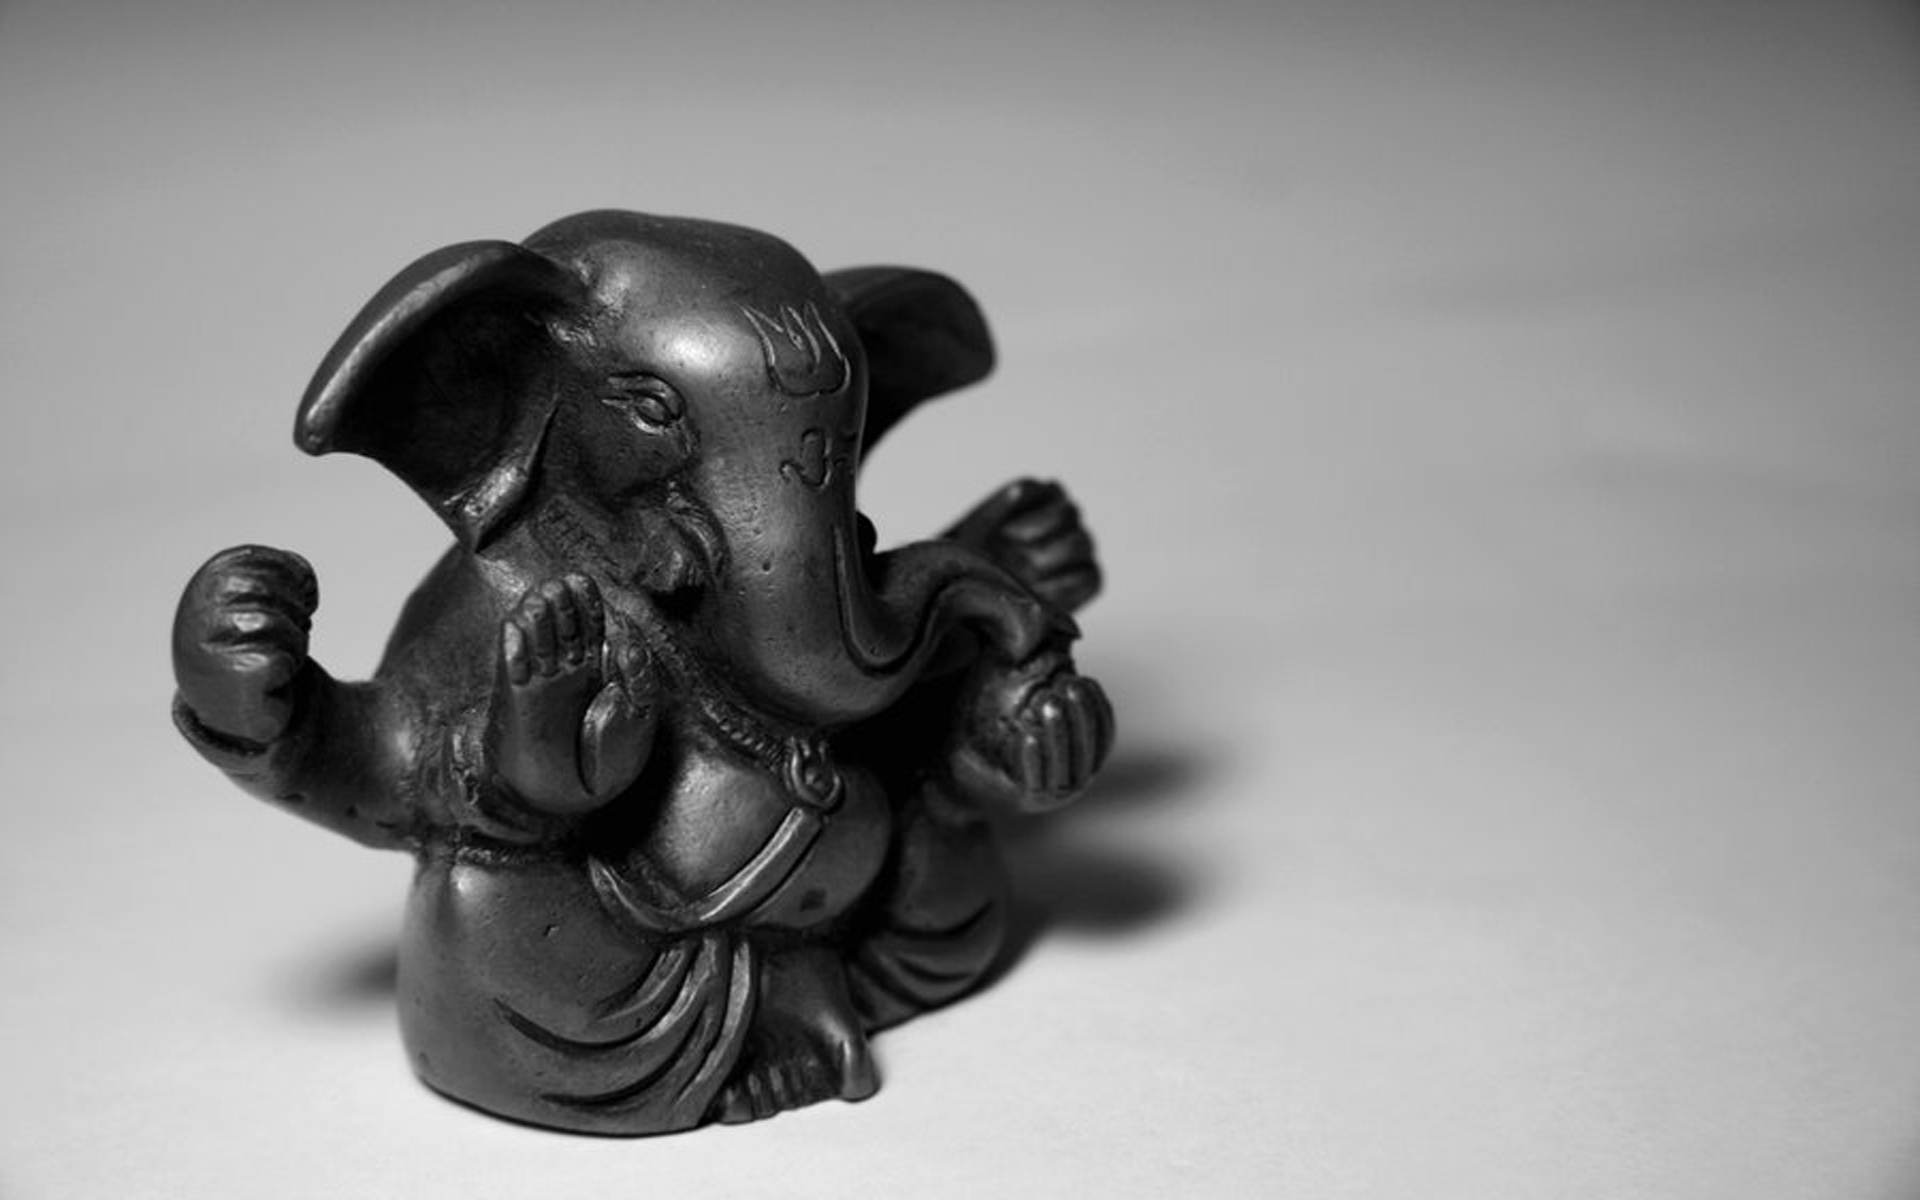 Ganpati Bappa 3d Wallpaper Ganpati Best Desktop Hd Wallpapers Wallpapers